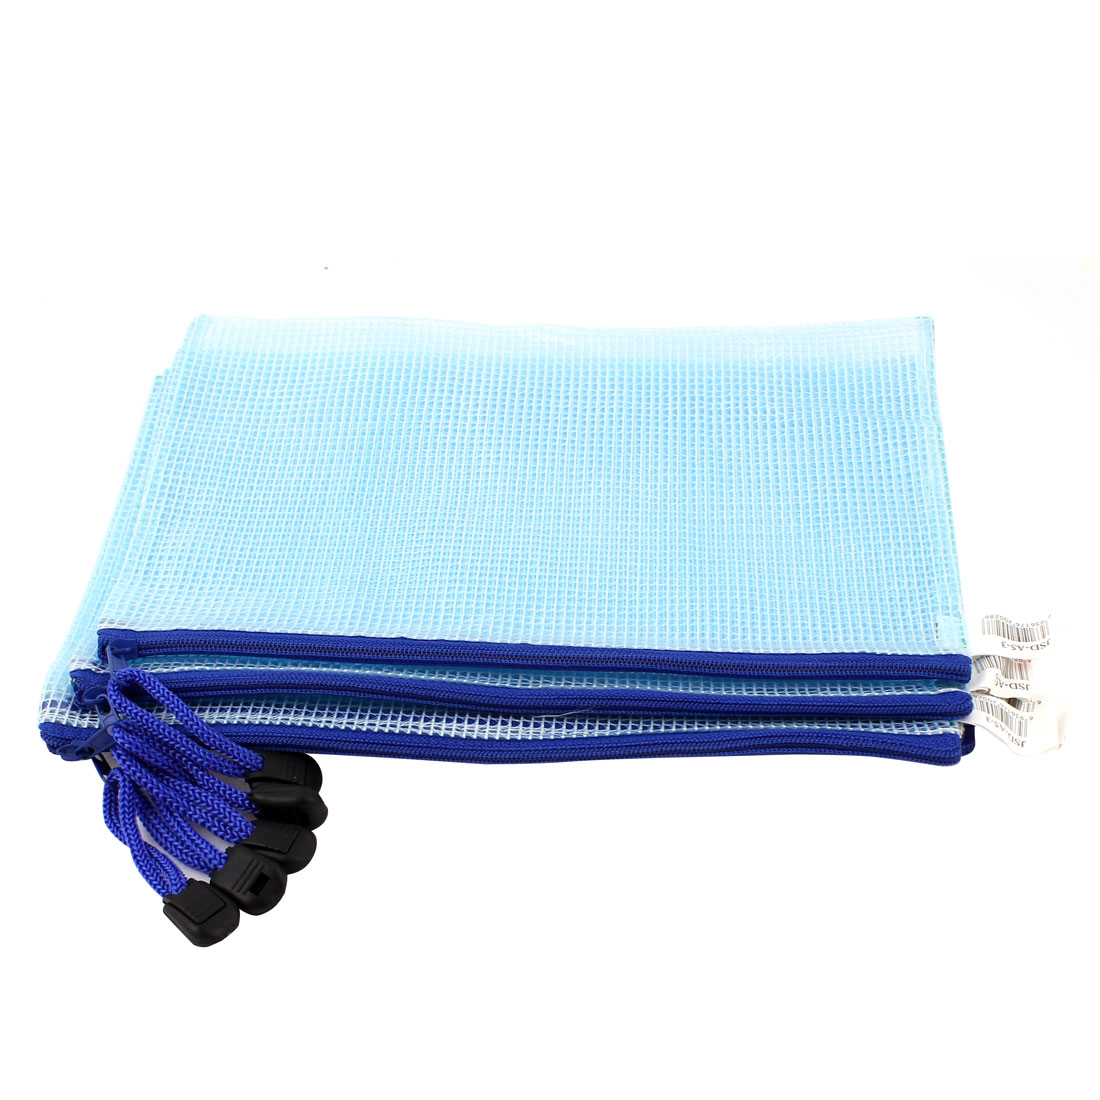 PVC Zippered Gridding Checkbook ID A5 Document File Bag Holder Blue 5pcs